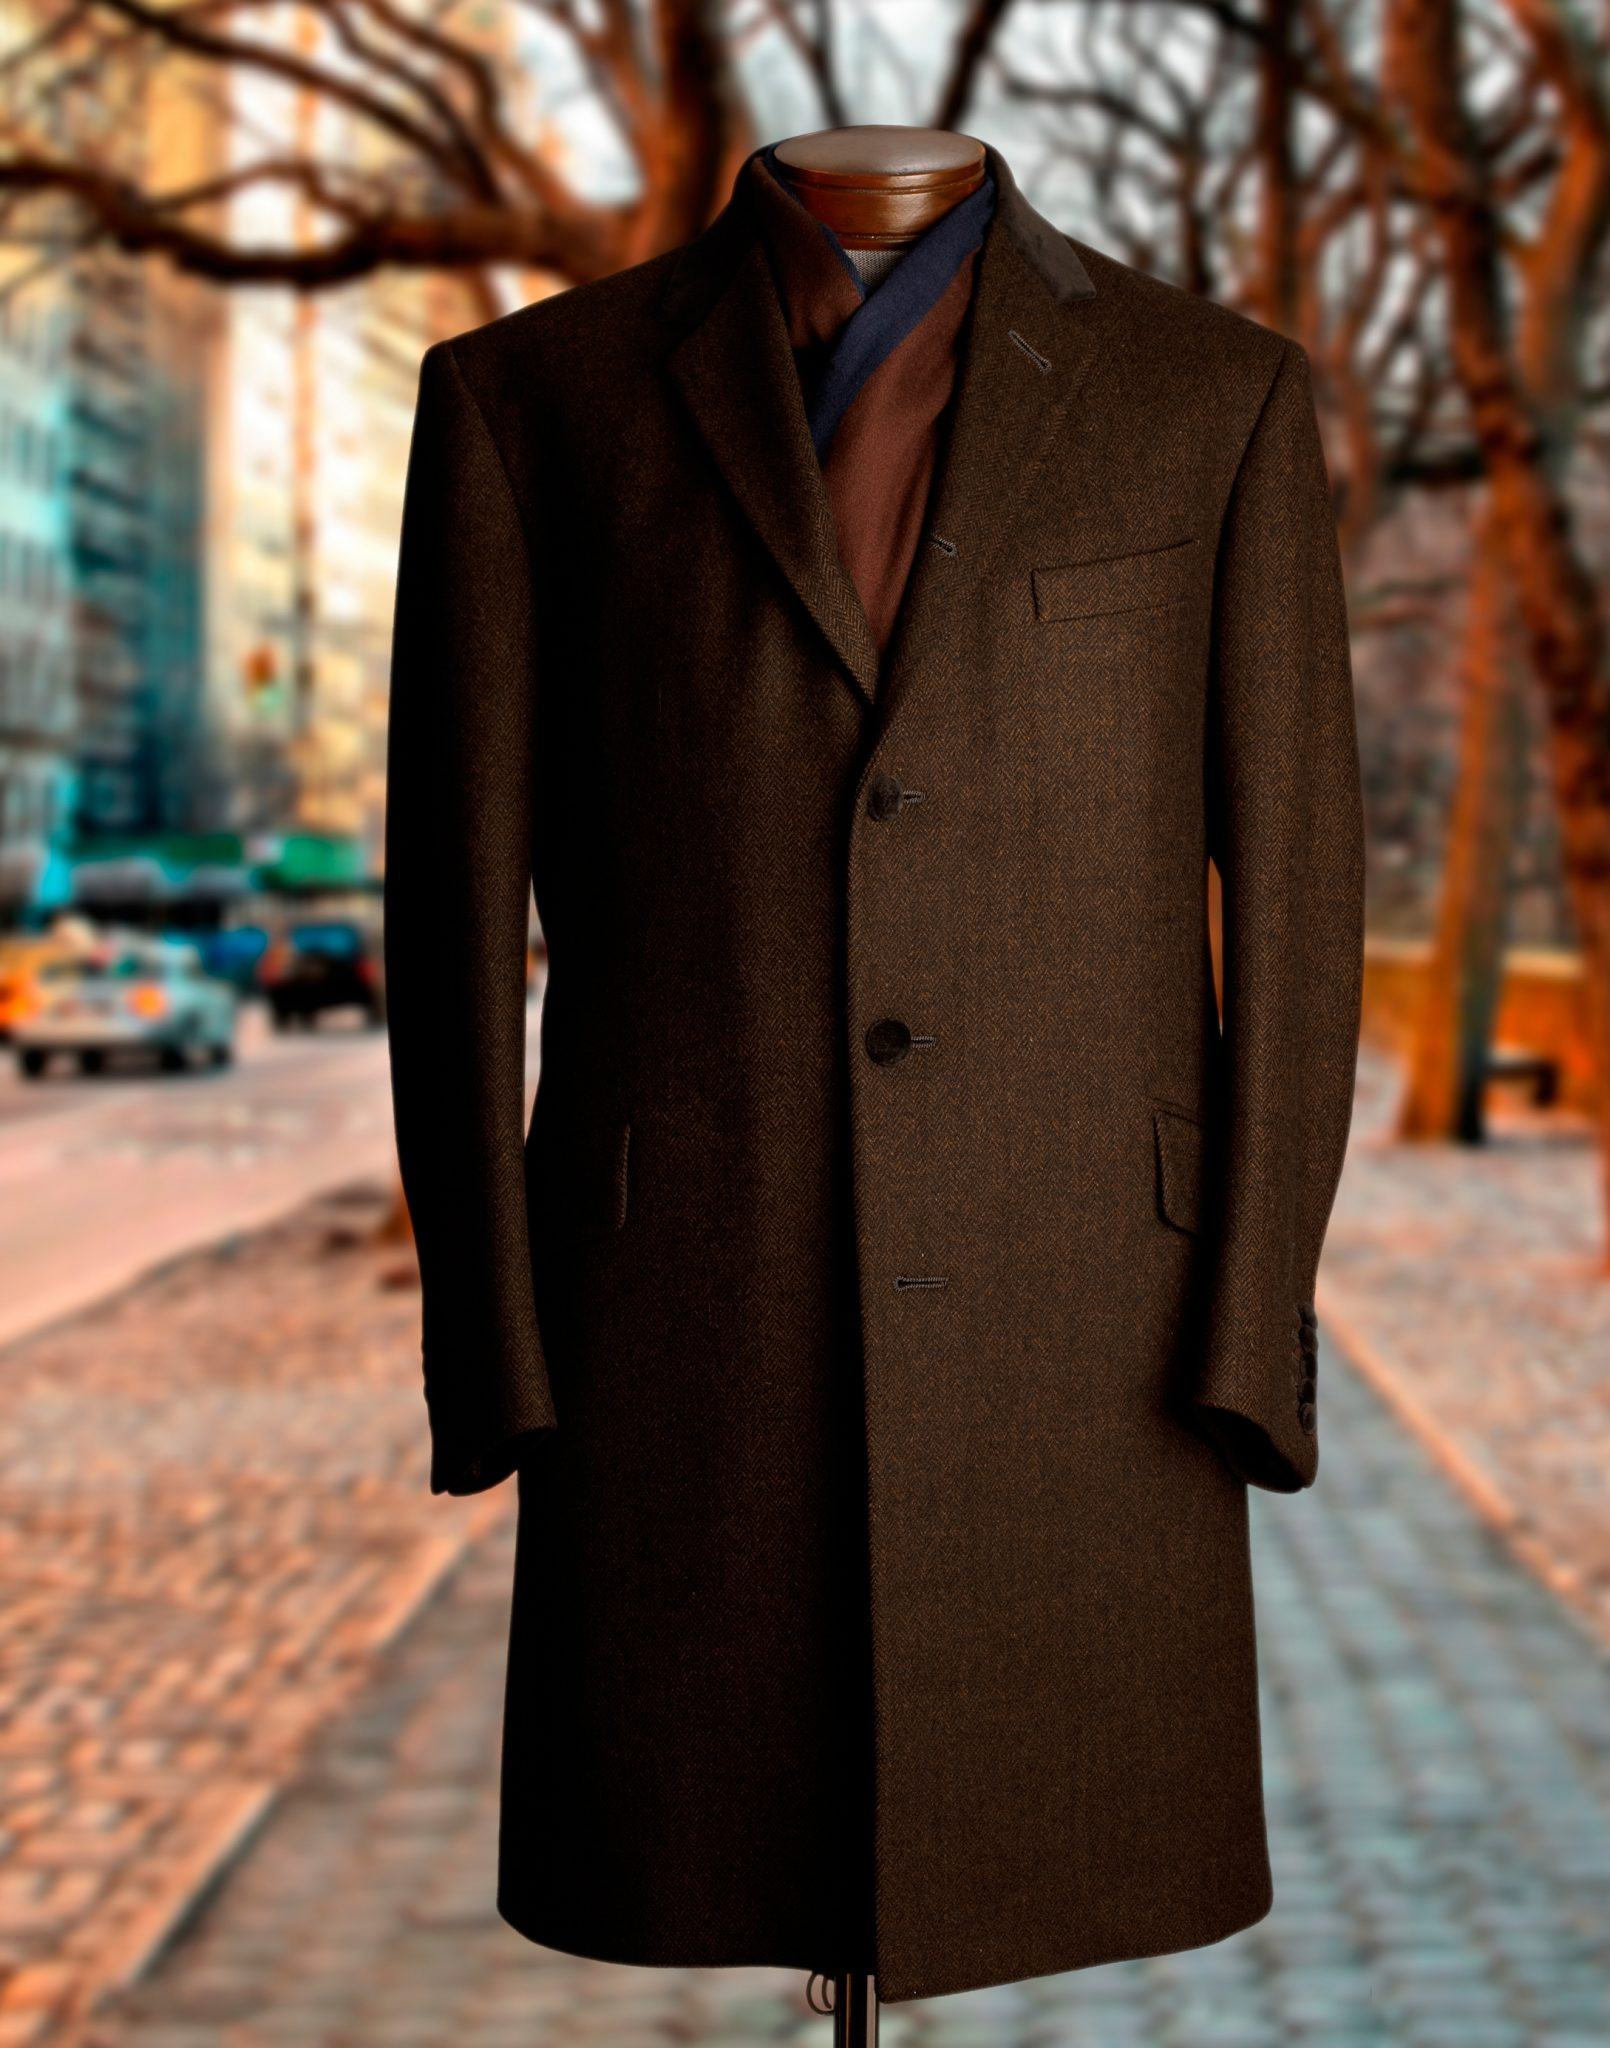 Custom Suits Overcoats Tuxedos Shirts NYC